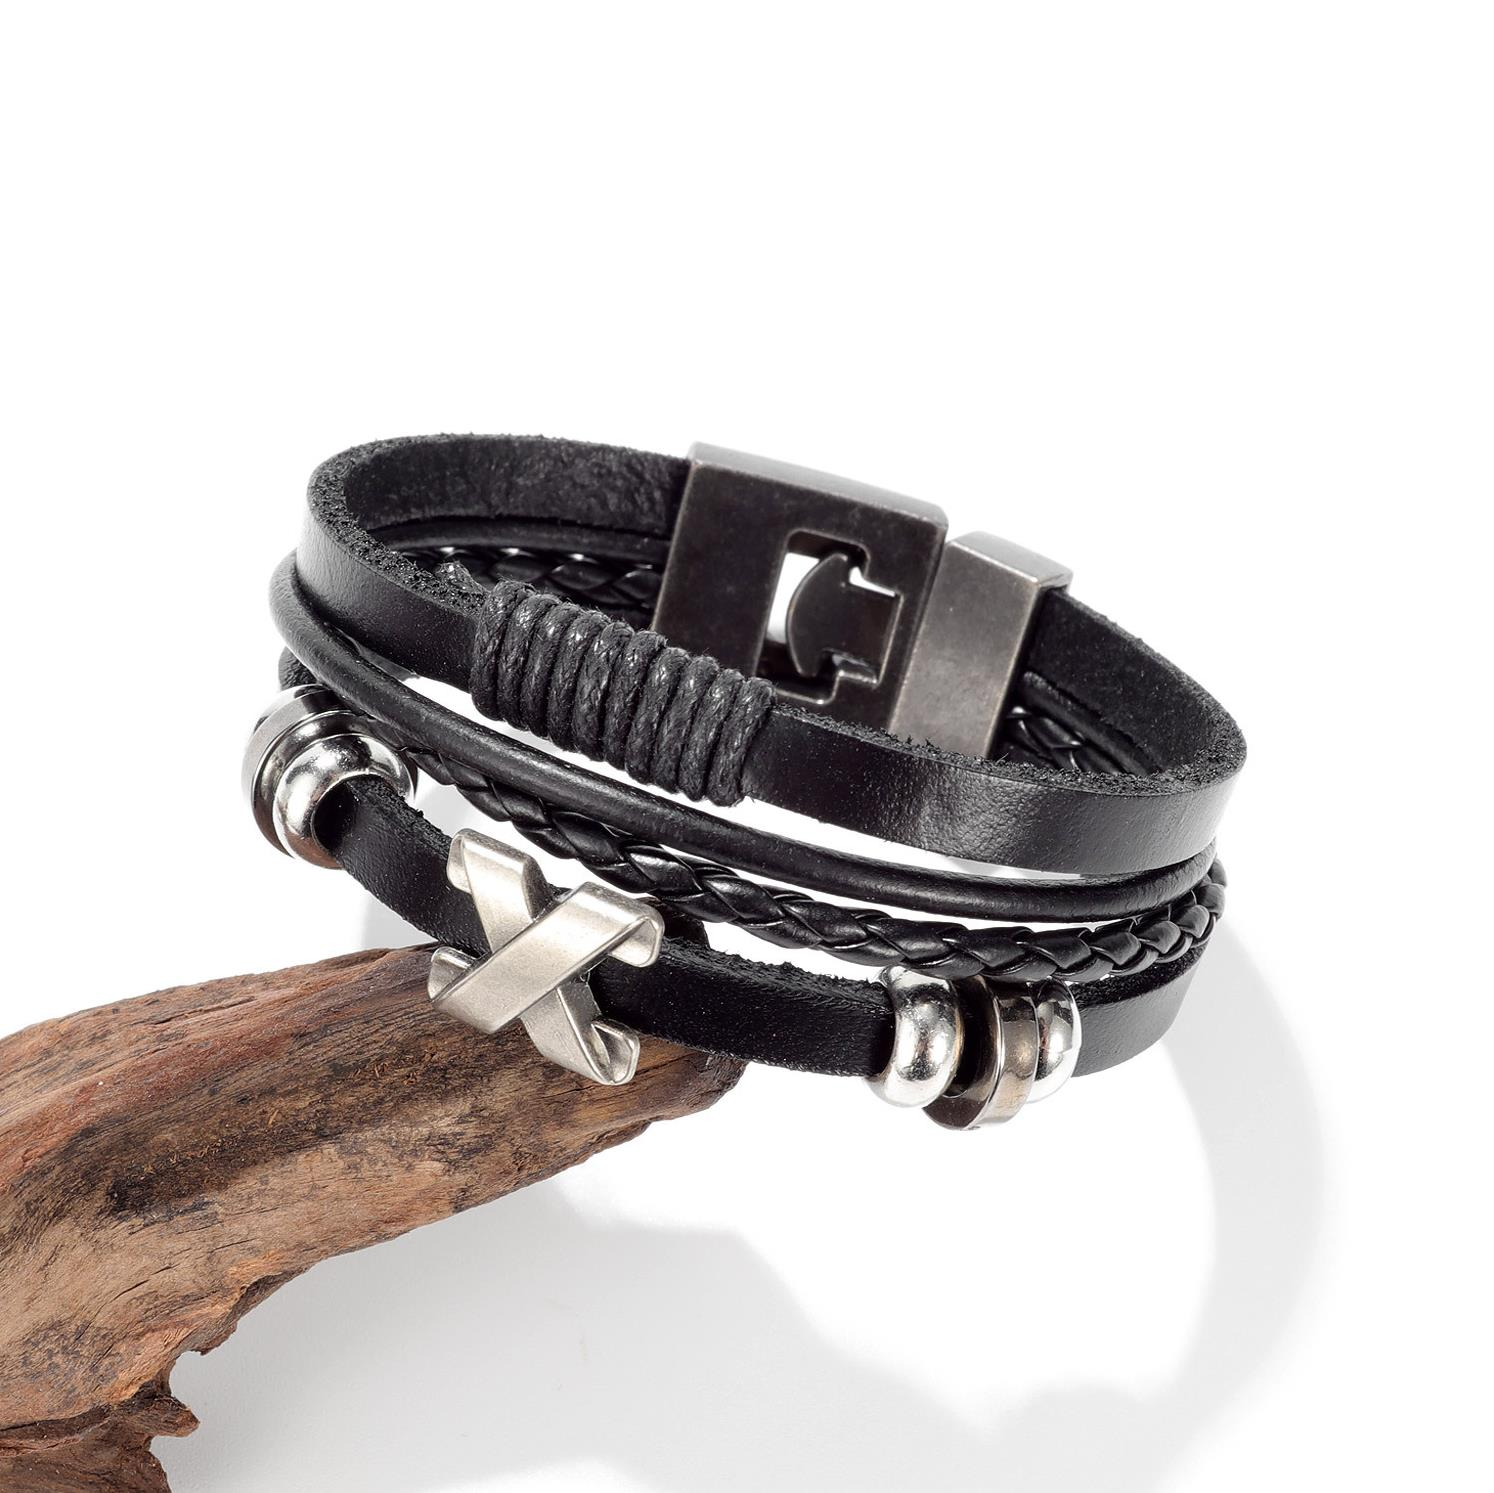 OPK jewelry retro multi-layer woven mens Leather Bracelet simple fashion alloy buckle leather bracelet